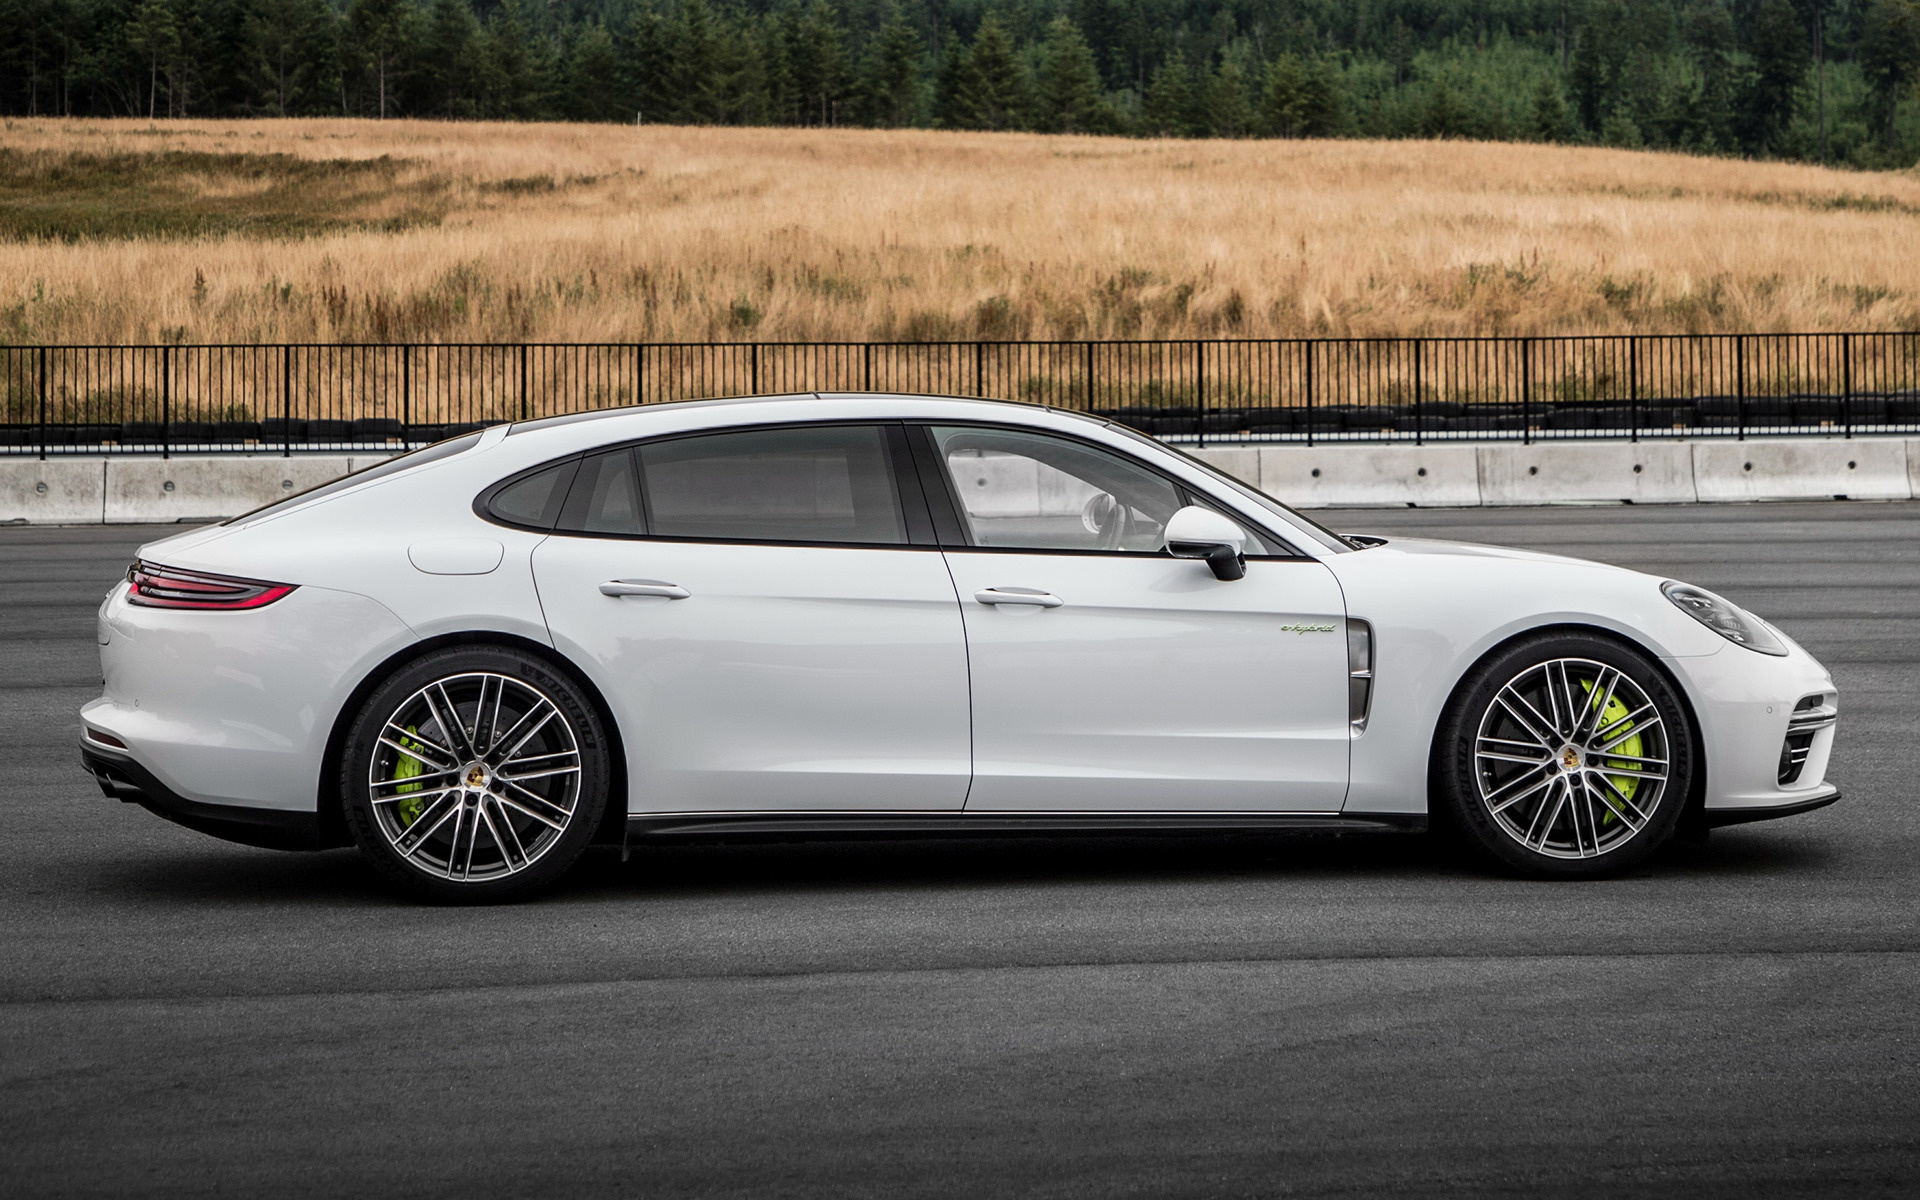 2017 porsche panamera turbo s e hybrid executive wallpapers and hd images car pixel. Black Bedroom Furniture Sets. Home Design Ideas